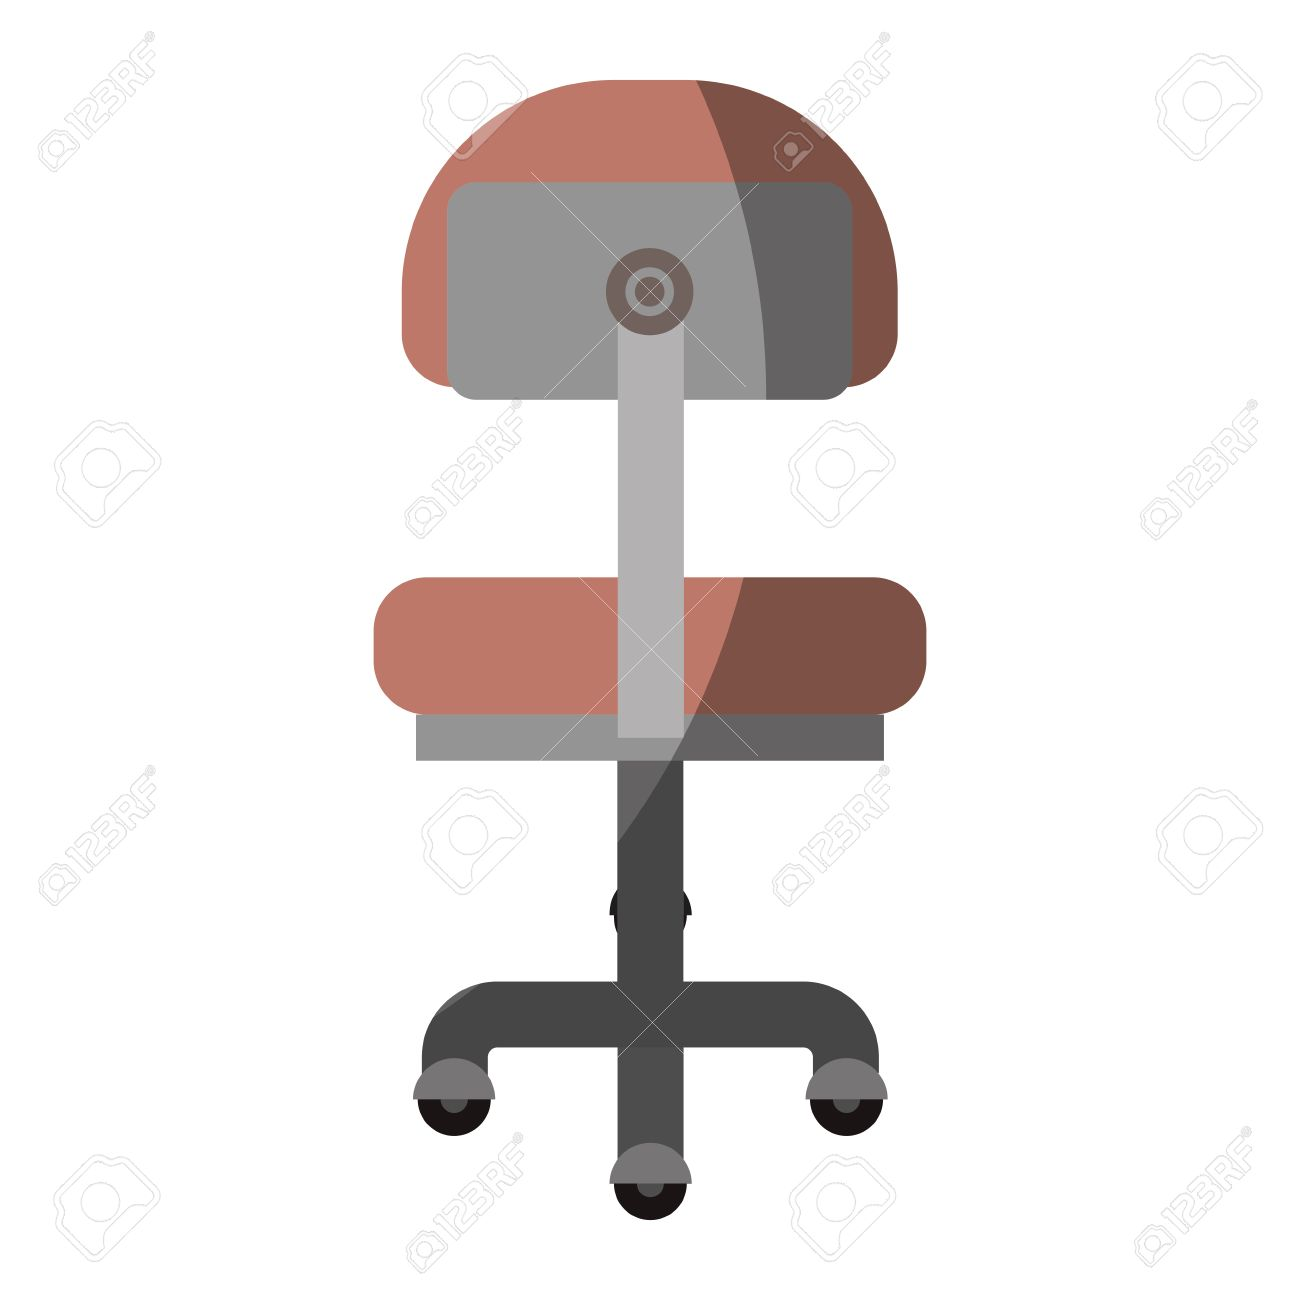 office chair illustration stacking chairs with arms colorful graphic of back view without contour and half shadow vector stock